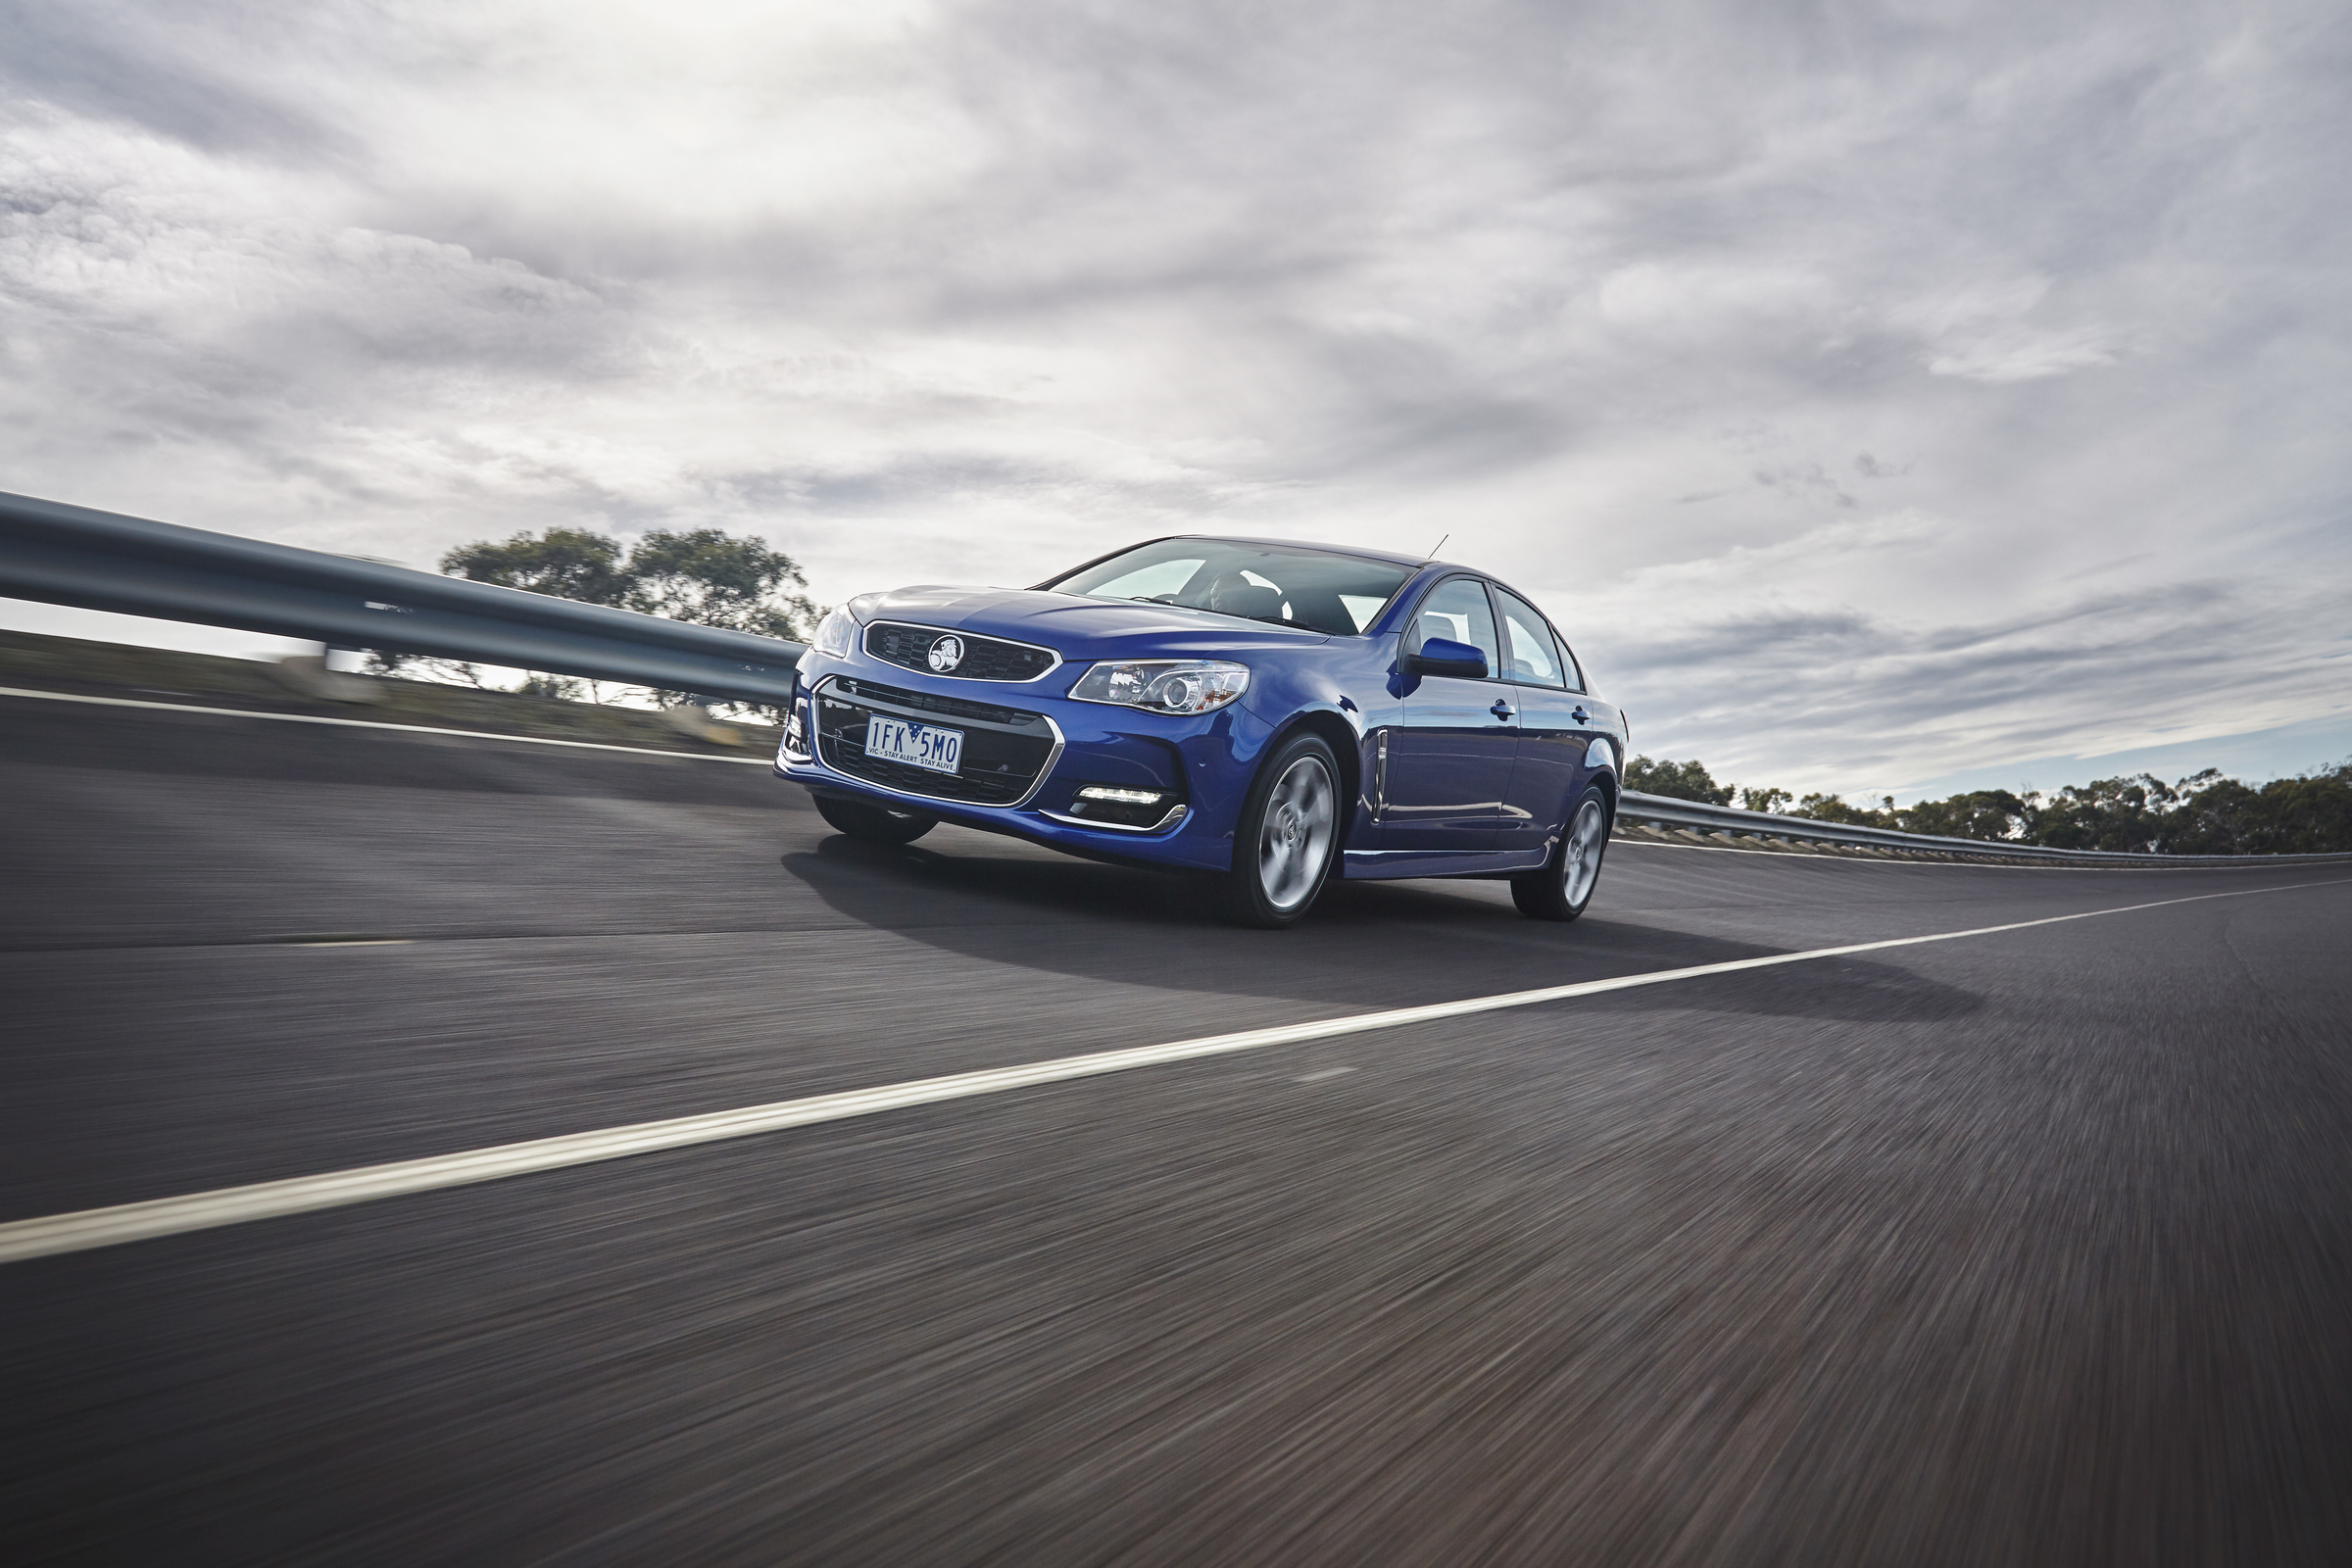 2016 Holden VF Commodore Series II Revealed VFII Features